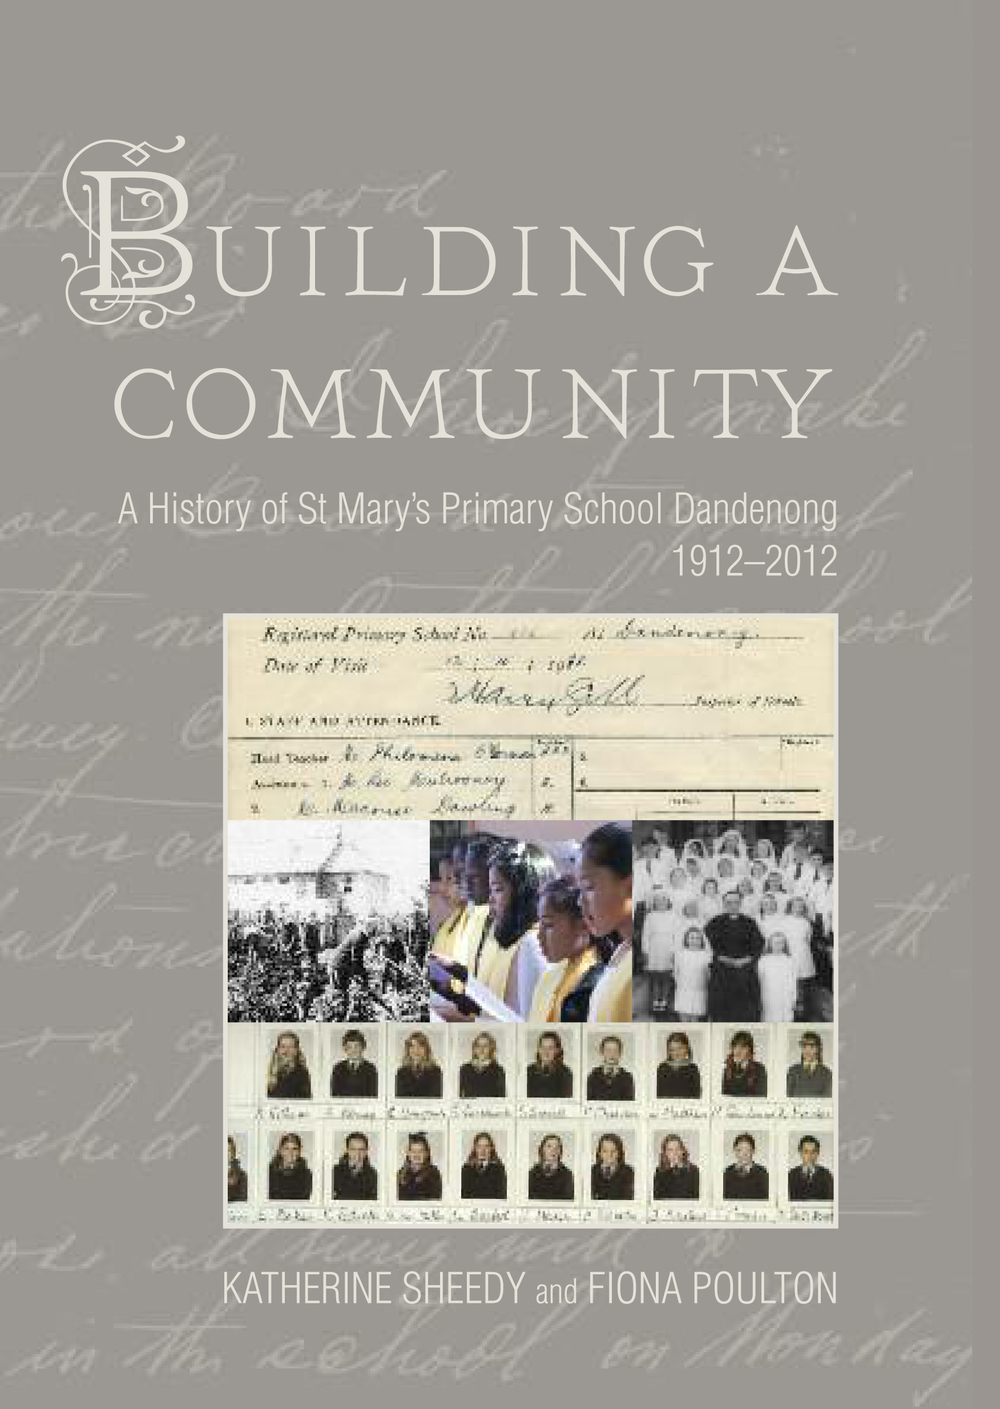 st-marys-history-cover-final-1.jpg